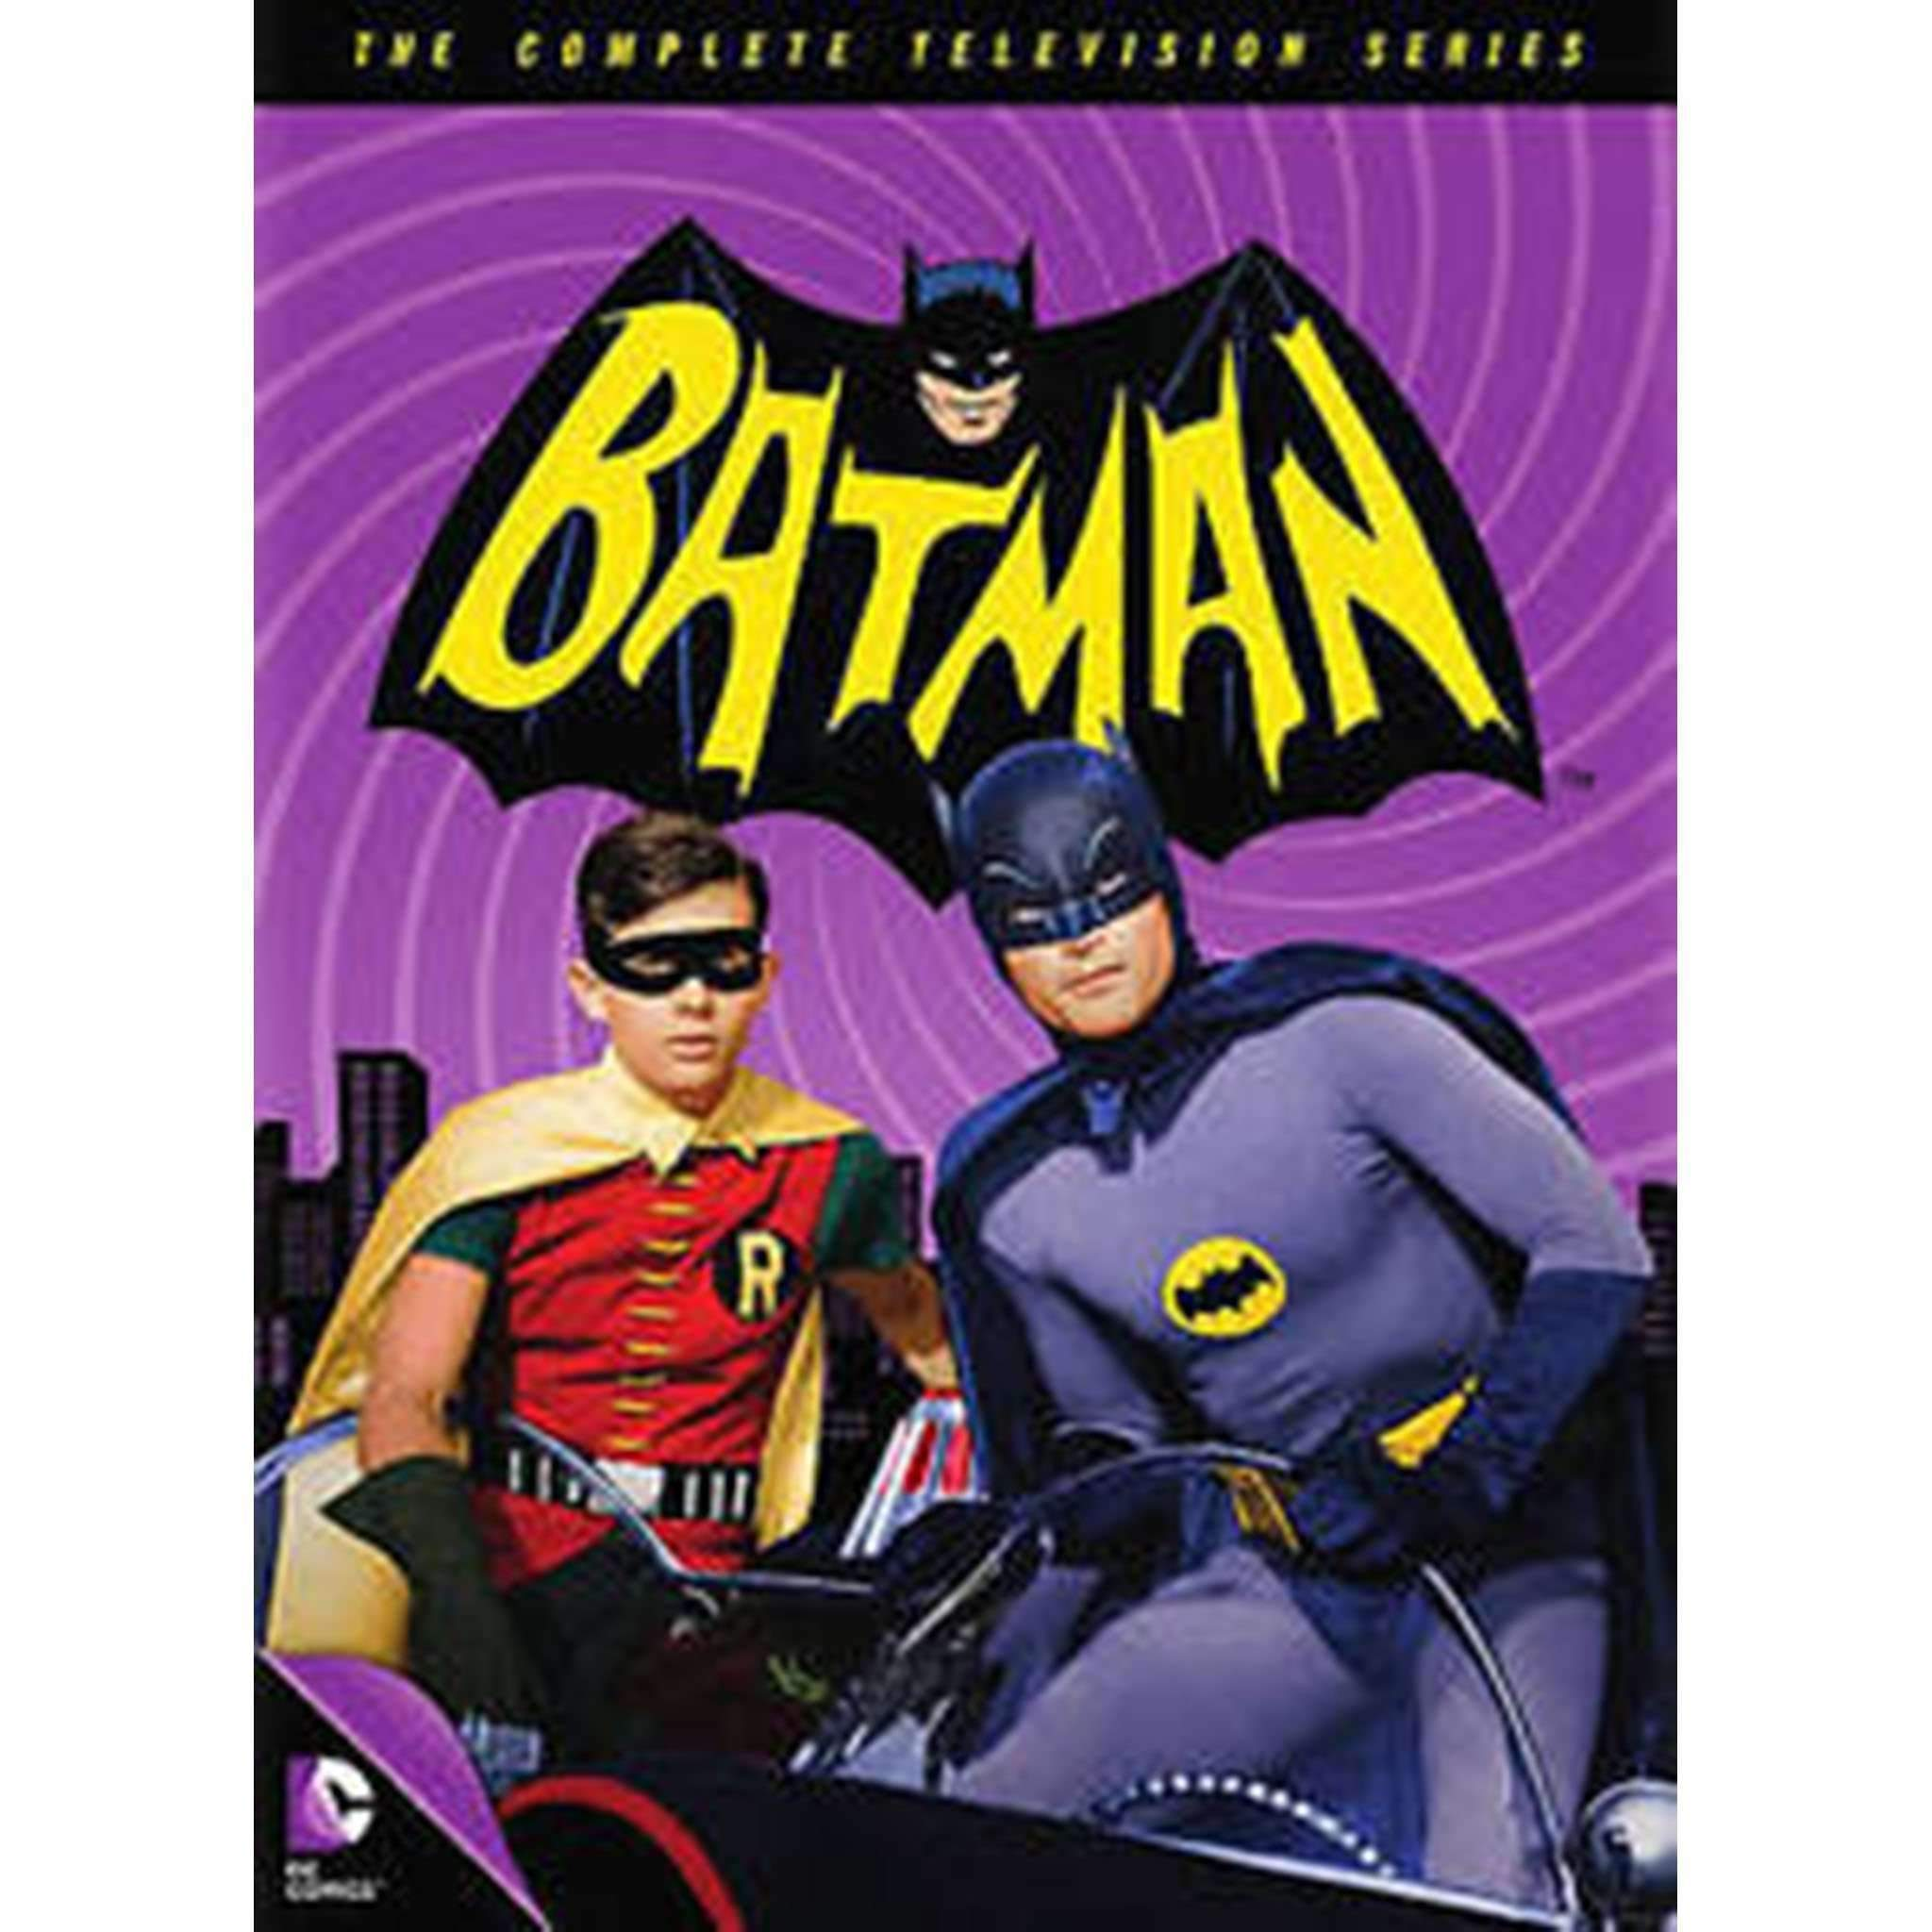 Batman TV Series DVD Complete Box Set 20th Century Fox DVDs & Blu-ray Discs > DVDs > Box Sets